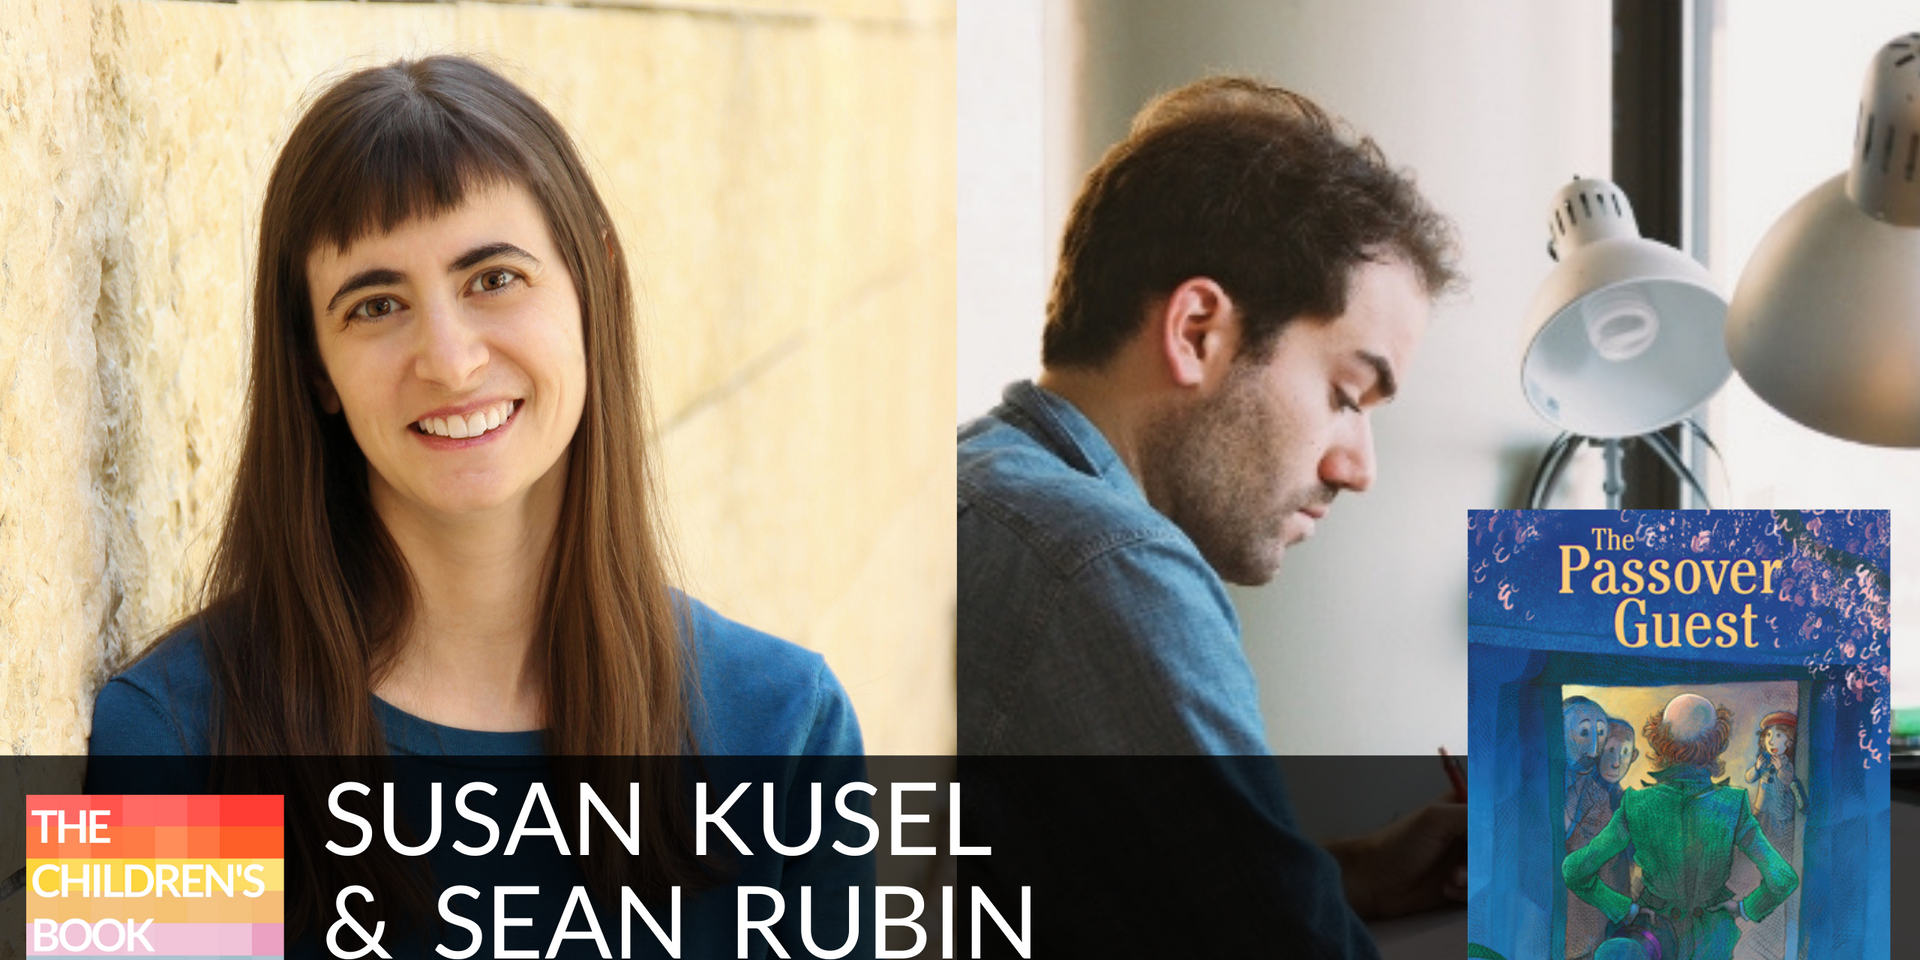 Susan Kusel and Sean Rubin